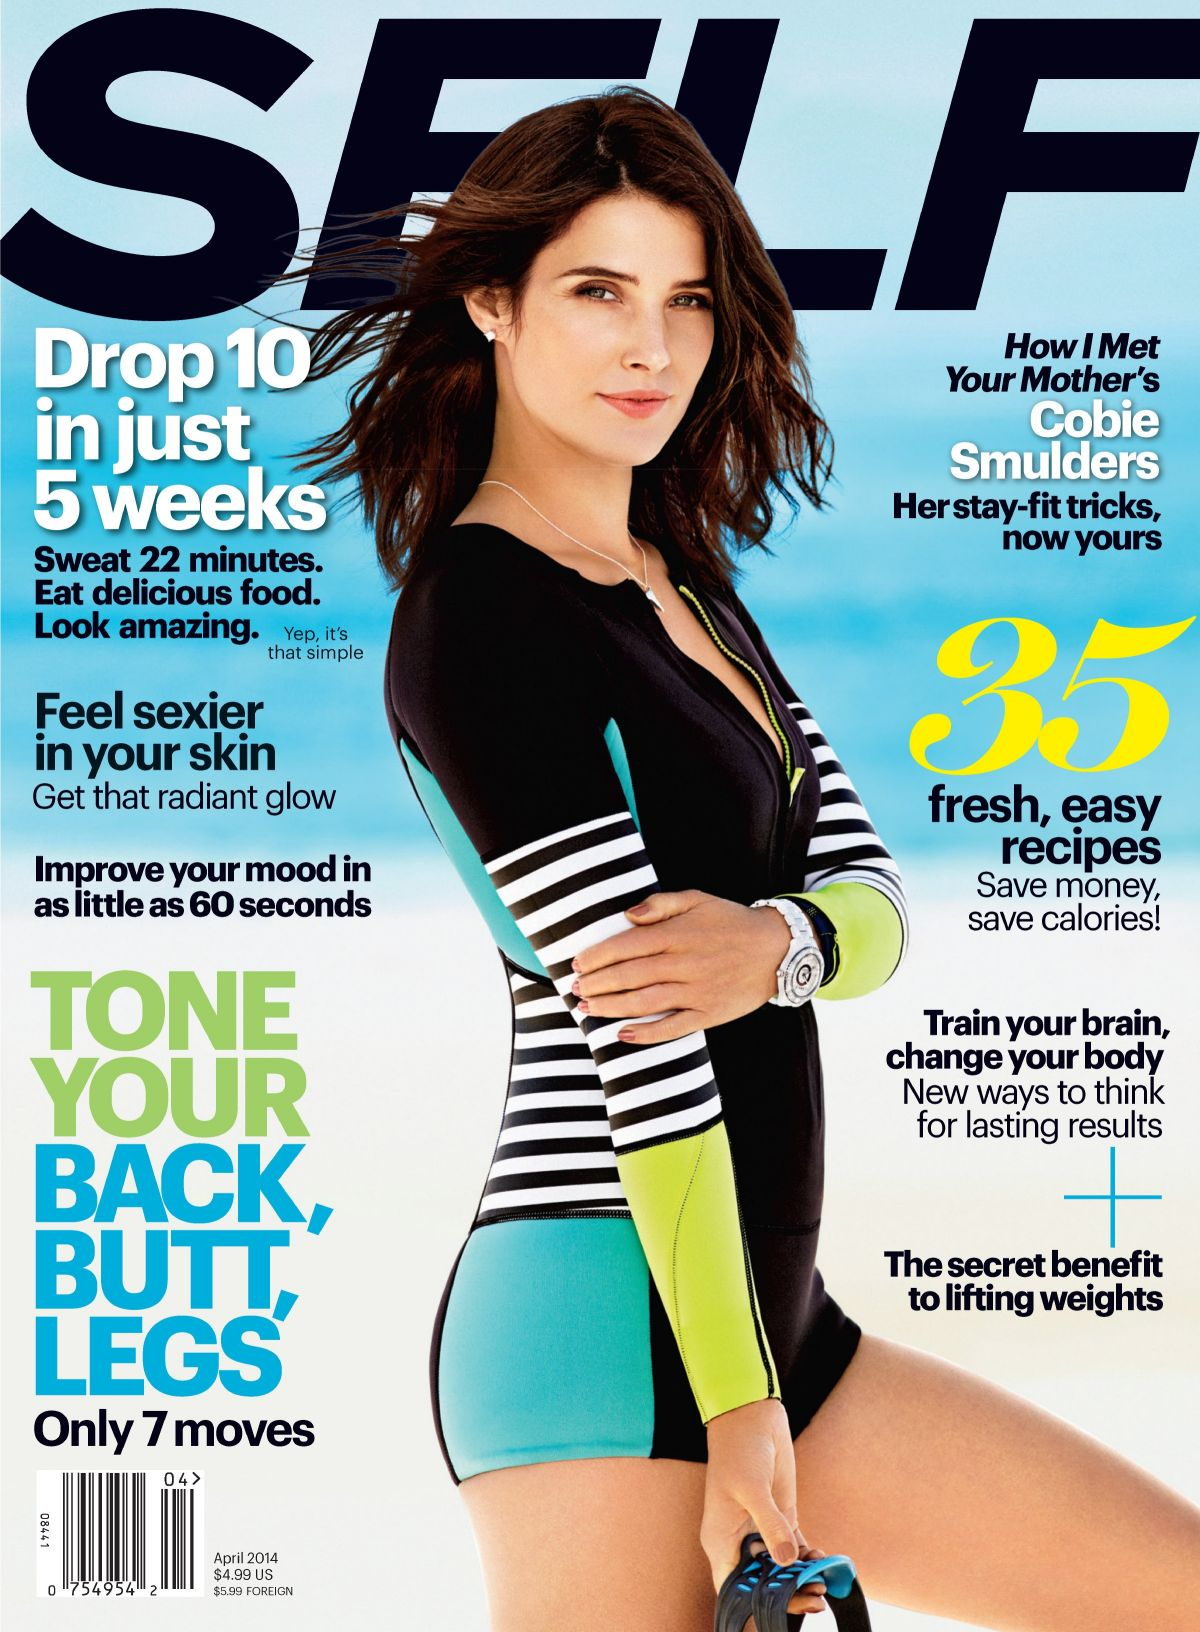 COBIE SMULDERS on the Cover of Self Magazine, April 2014 Issue